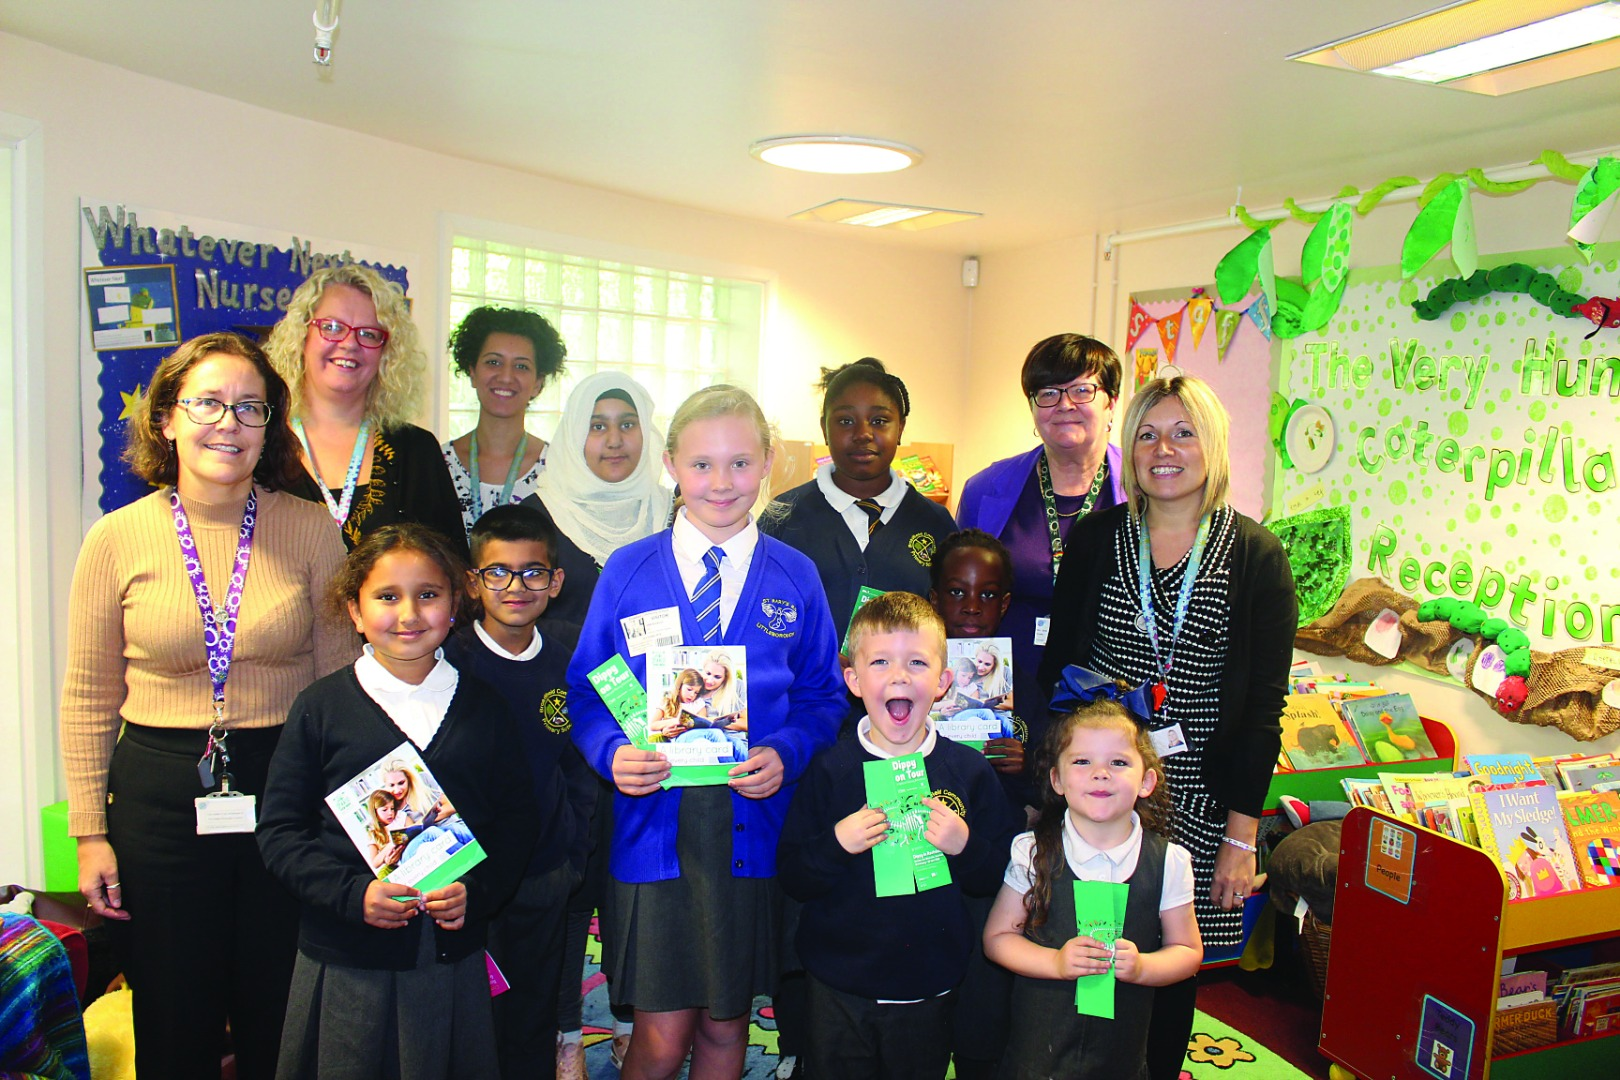 Pupils celebrate the launch of the library card for every child scheme